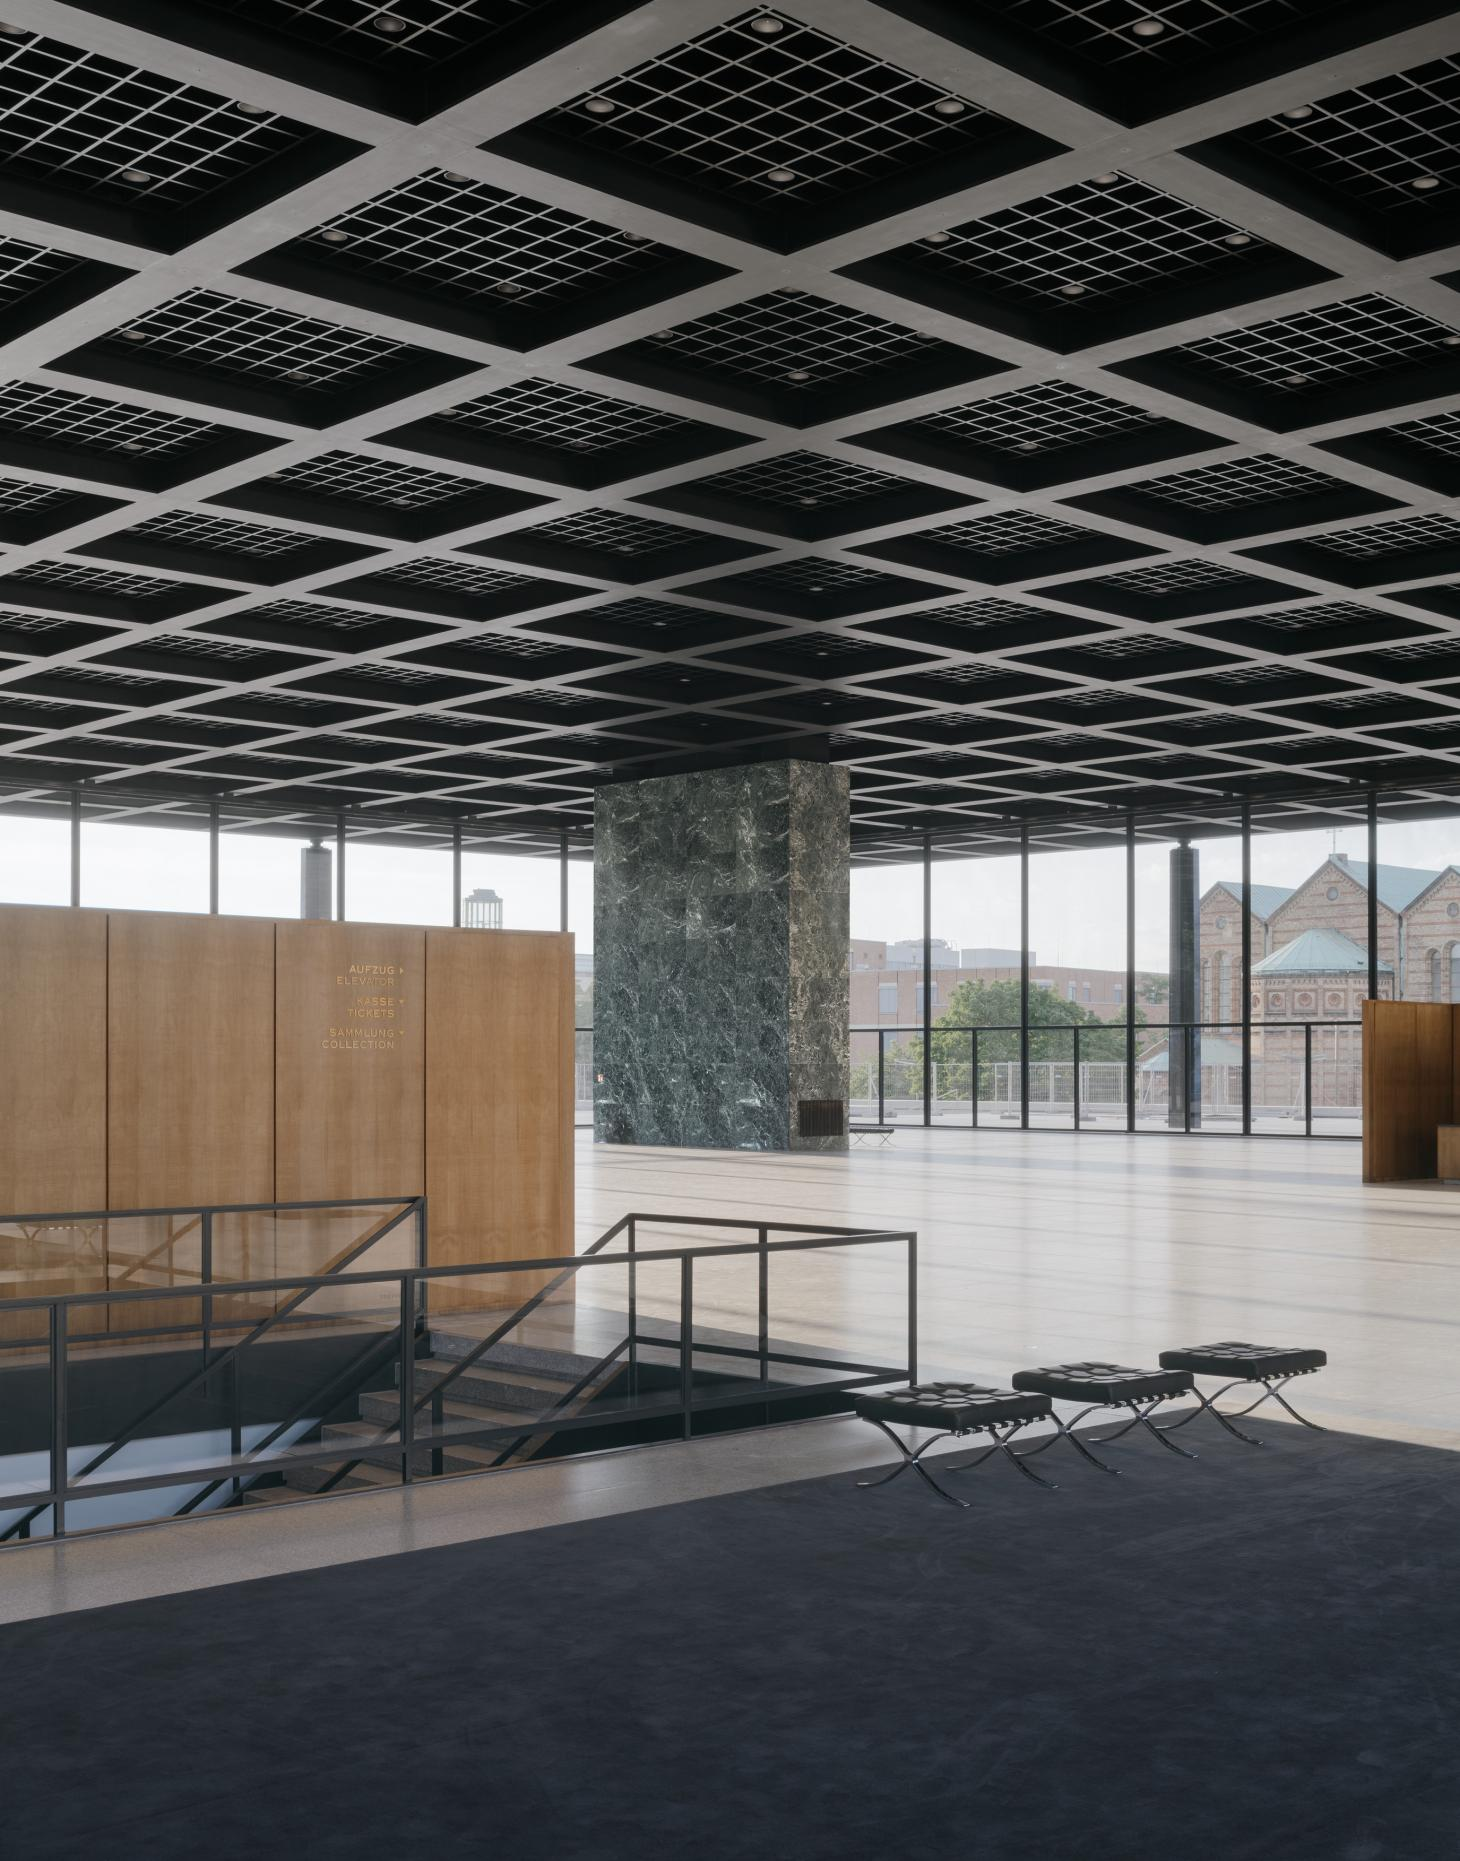 interior with blend of materials at Neue Nationalgalerie refurbishment by David Chipperfield in Berlin